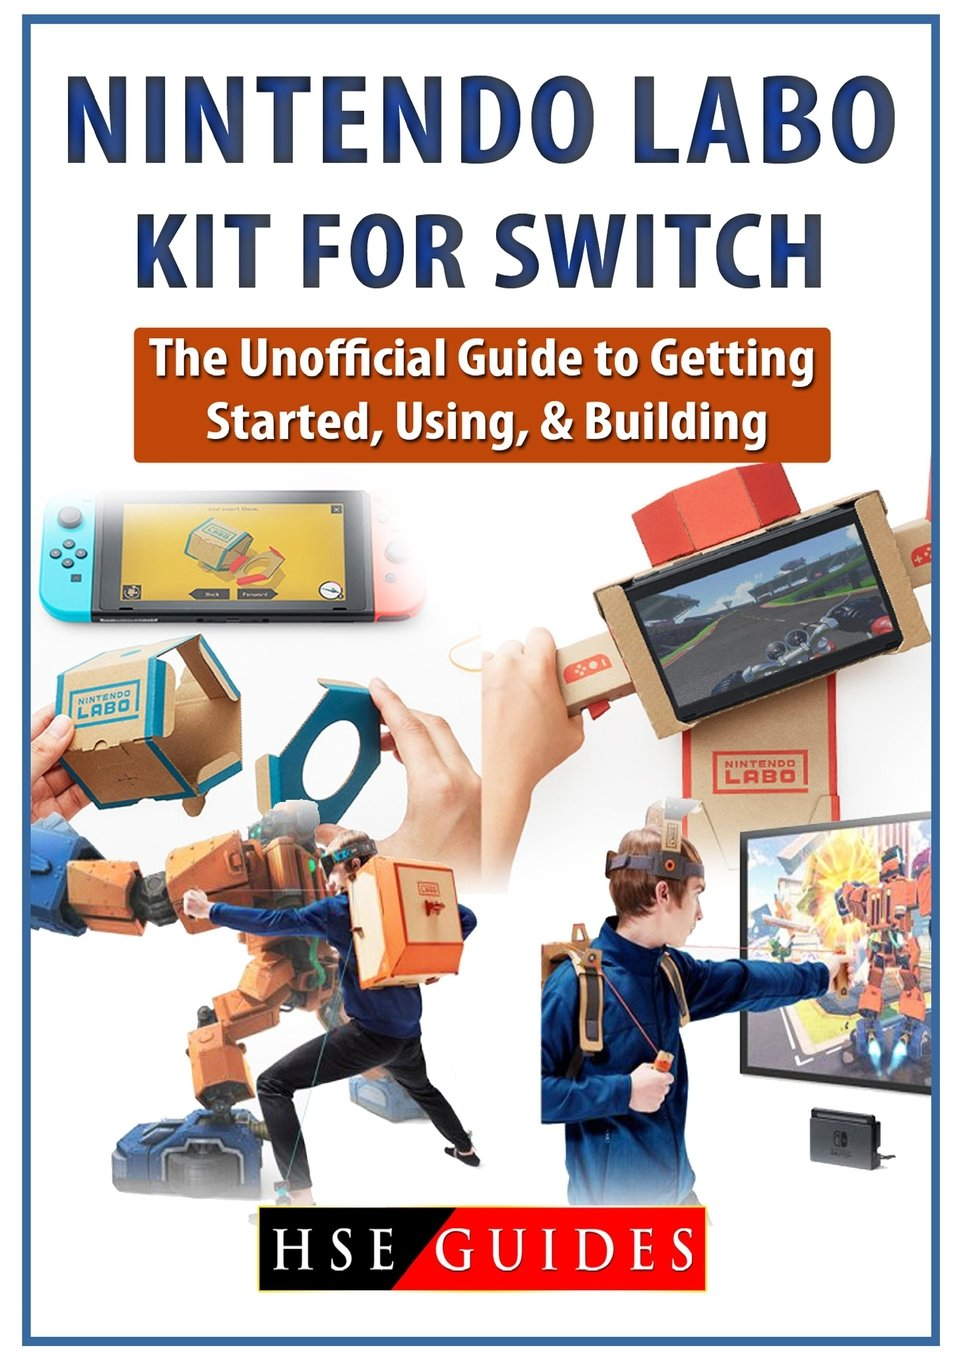 Nintendo Labo Kit for Switch: The Unofficial Guide to Getting Started, Using, & Building ebook